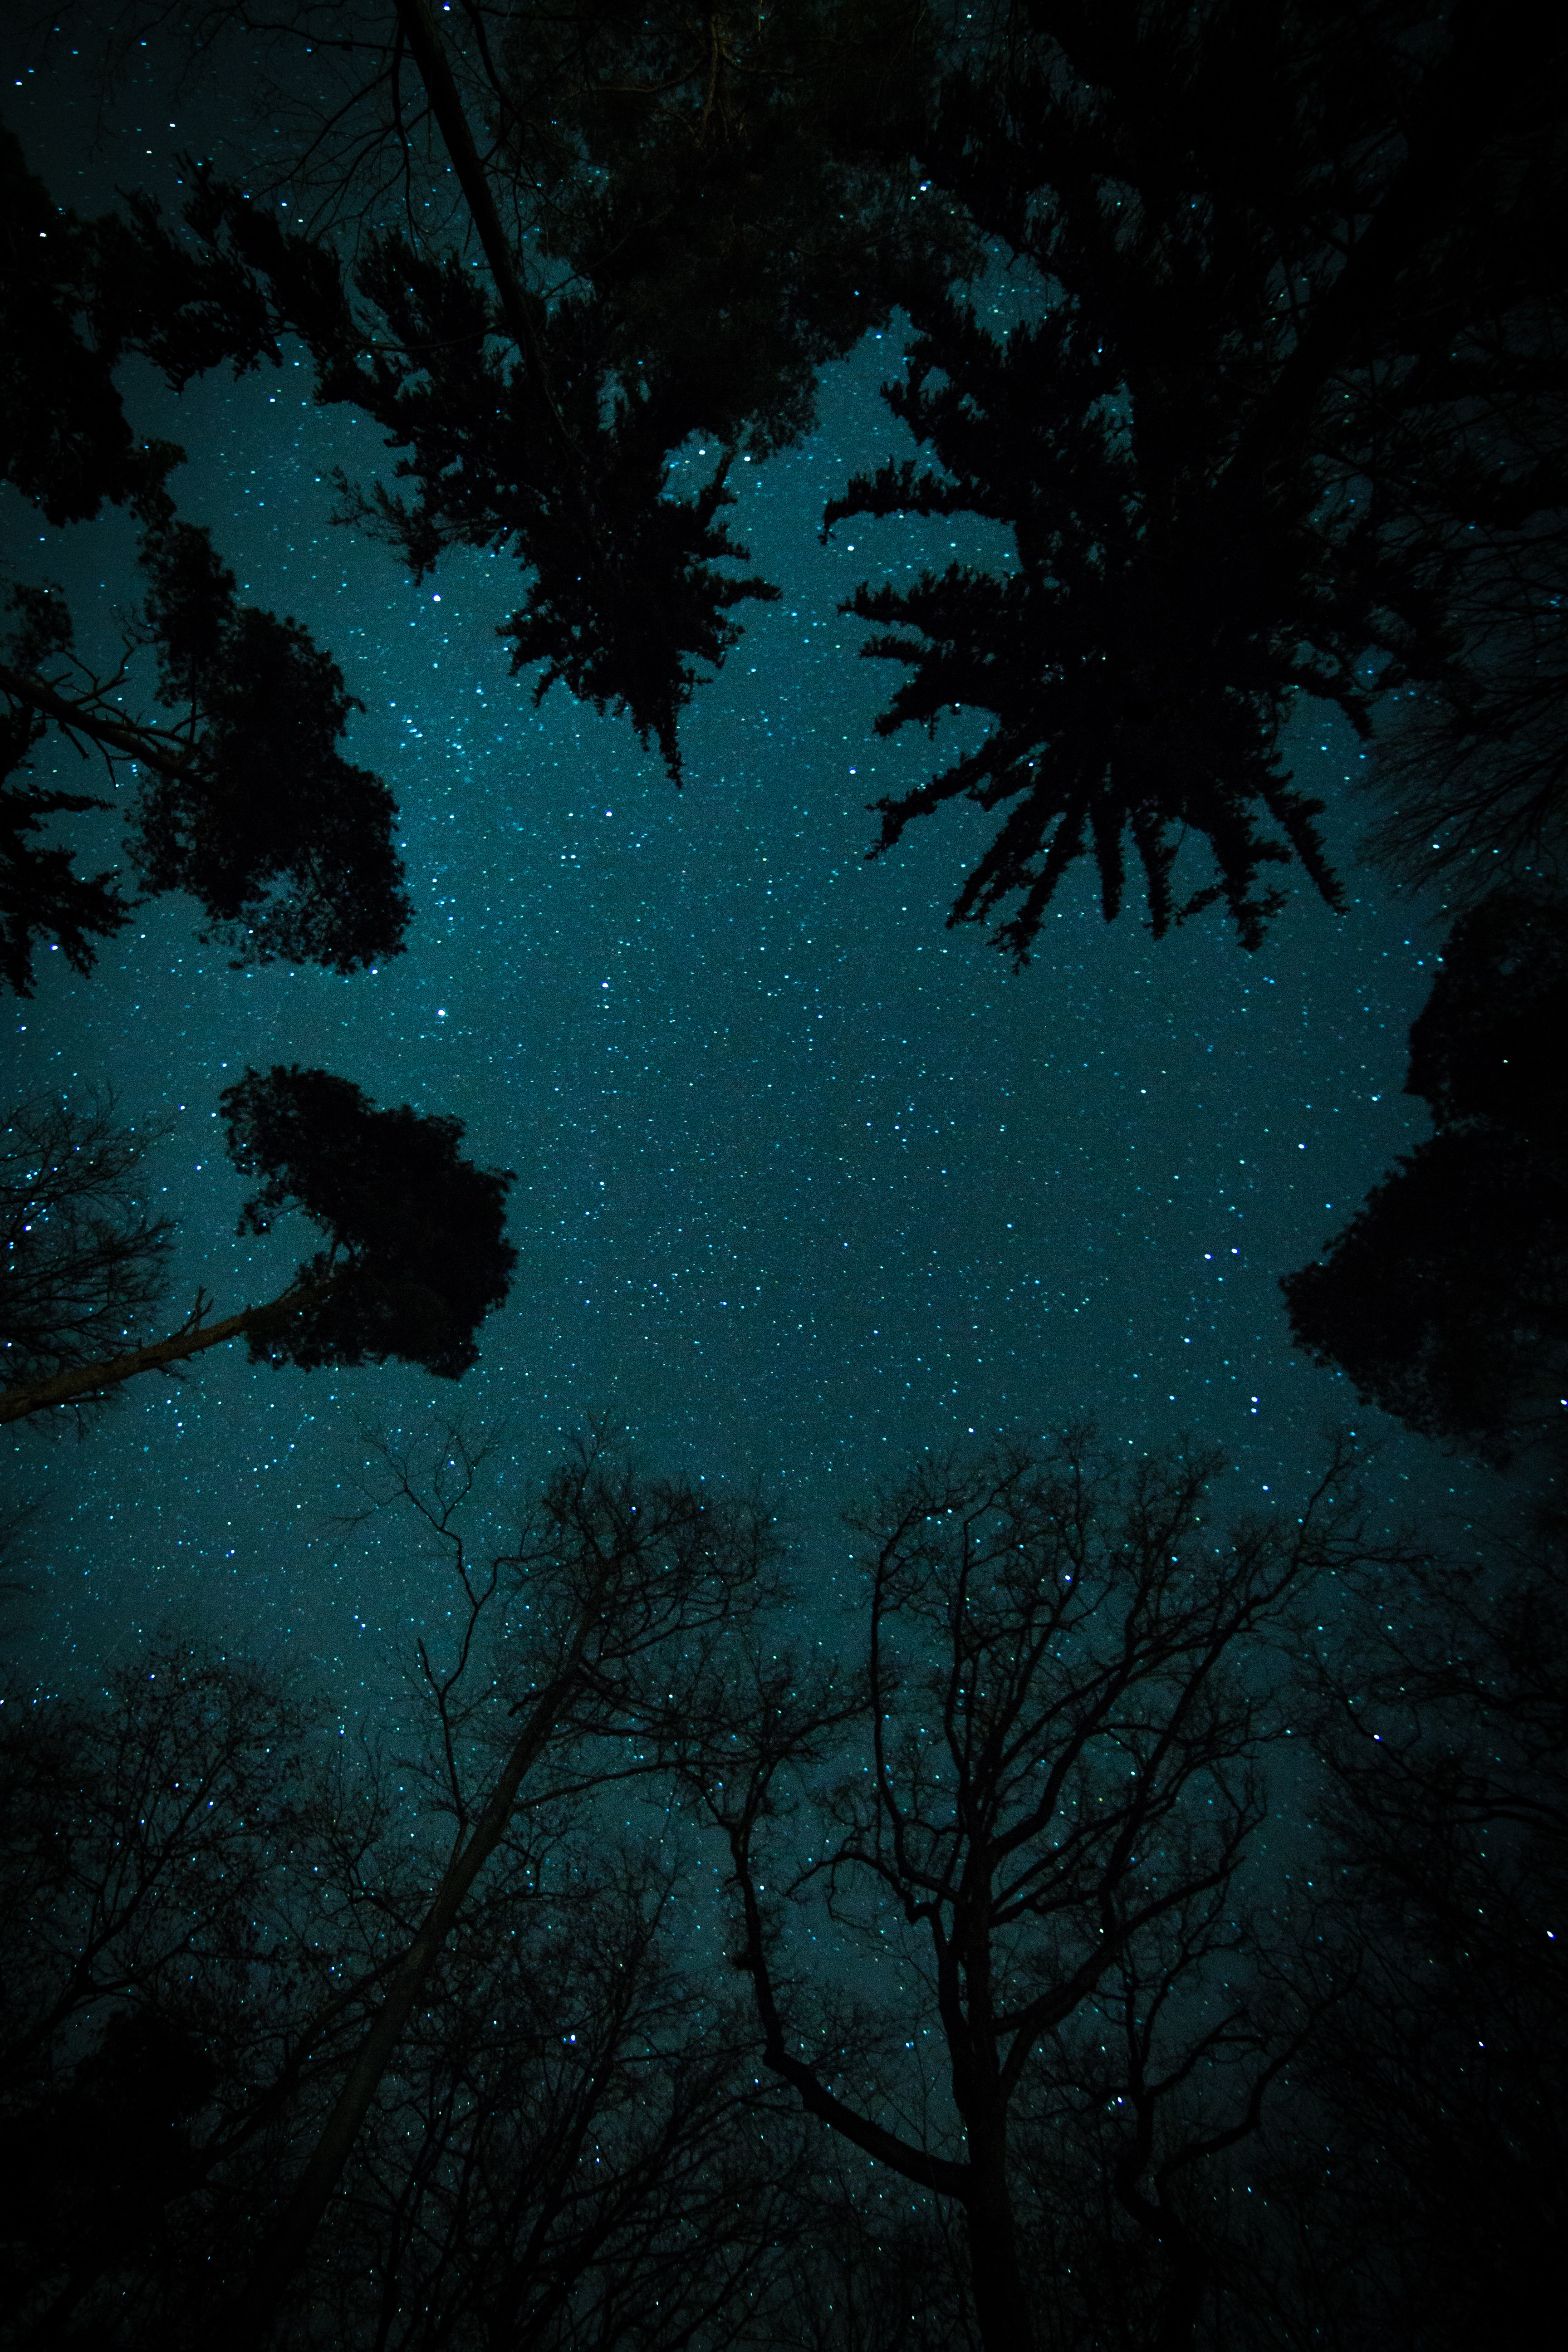 trees under starry sky